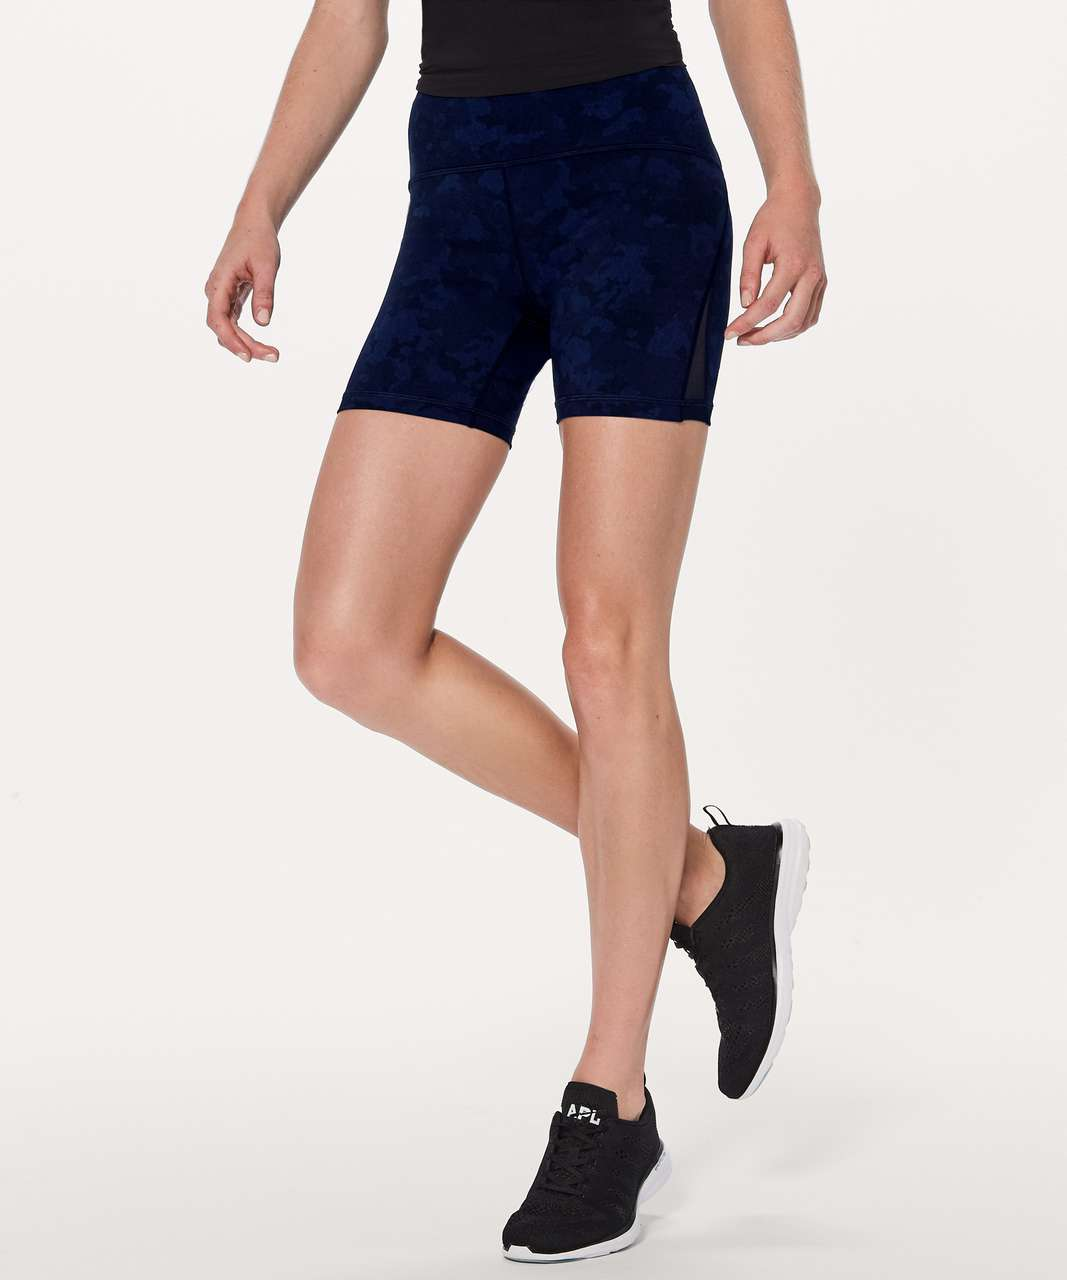 "Lululemon Train Times Short *6"" - Camouflaged Midnight Navy Black / Black"